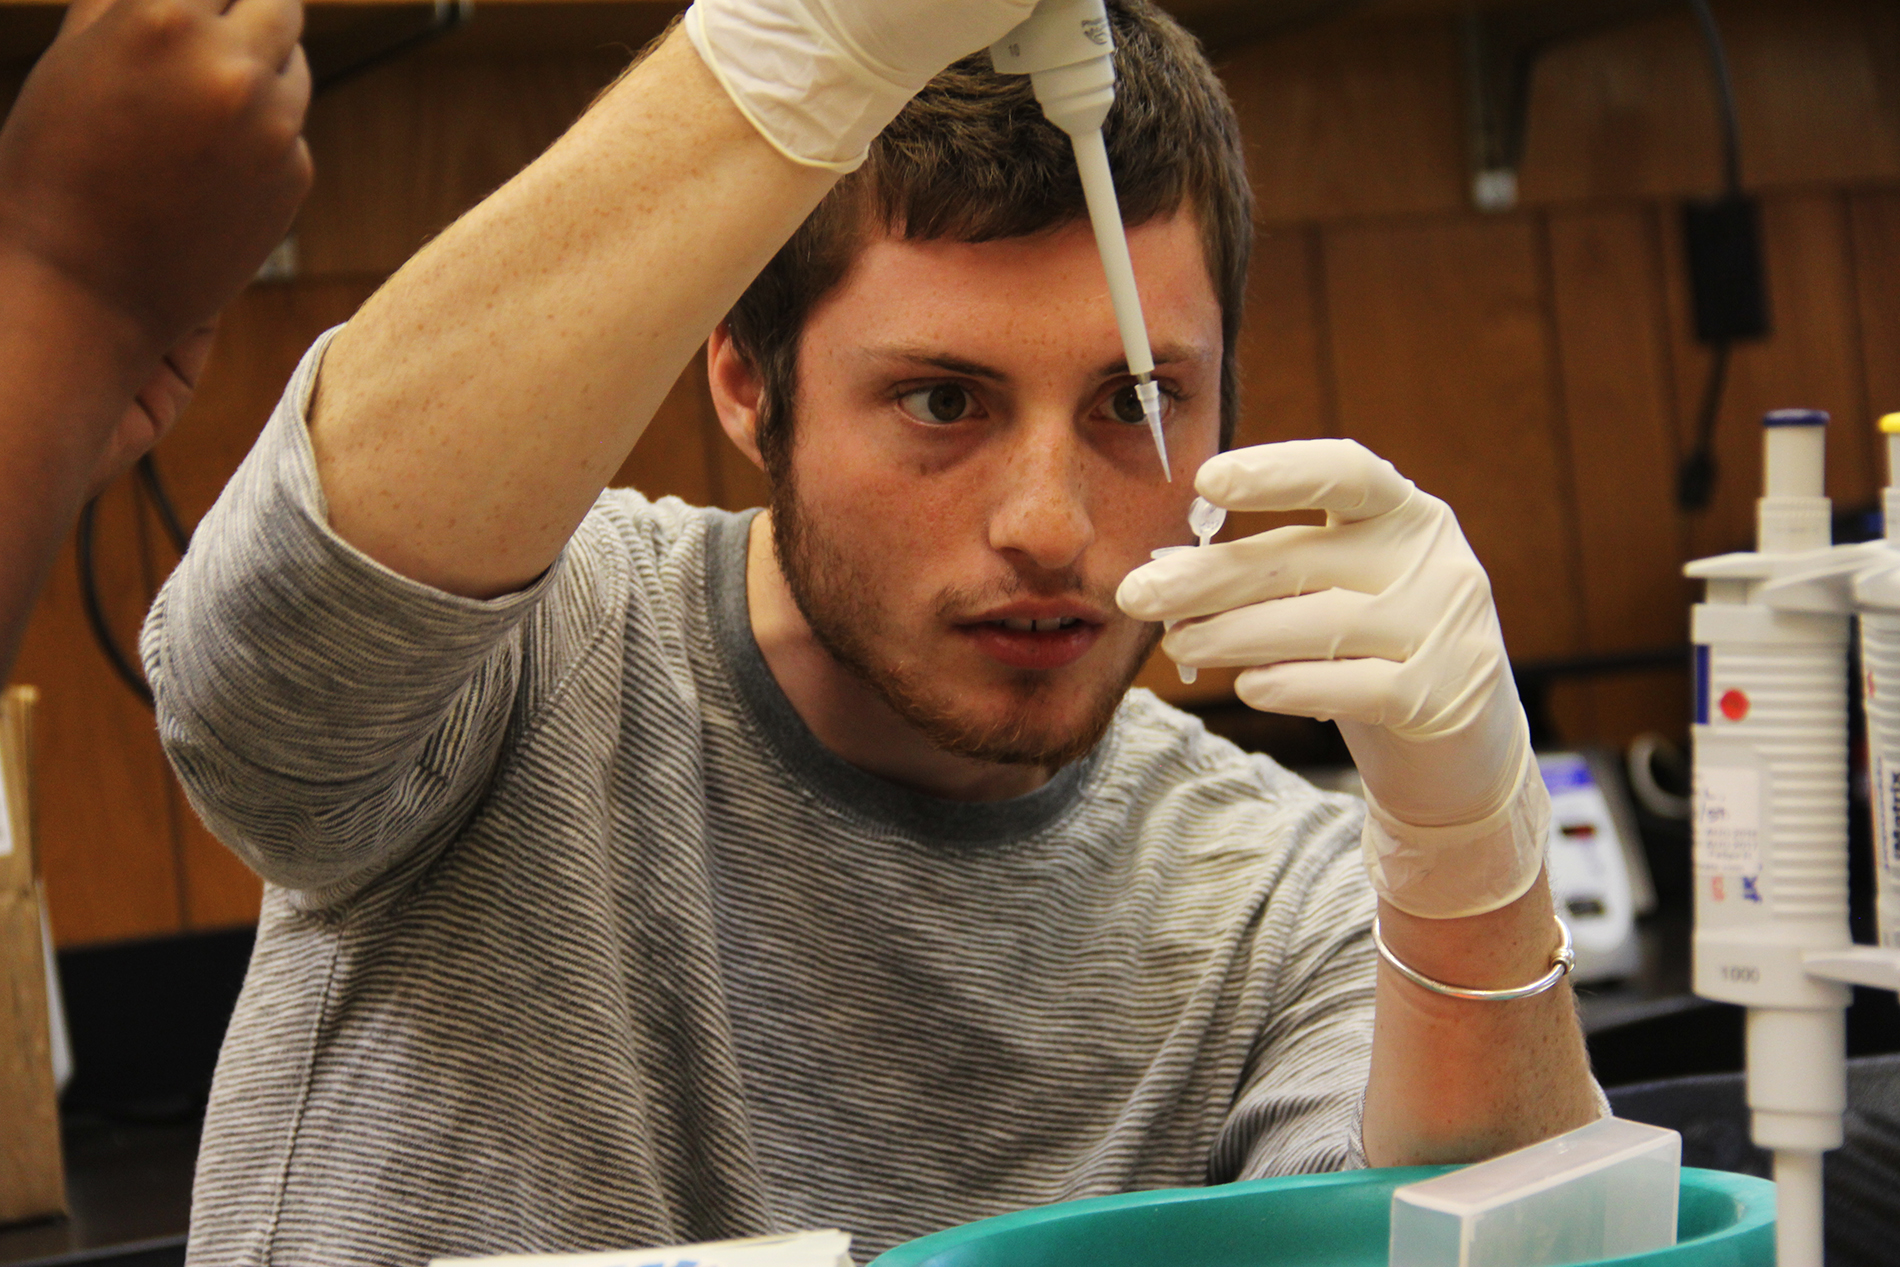 a male student concentrates on pipetting into a small test tube